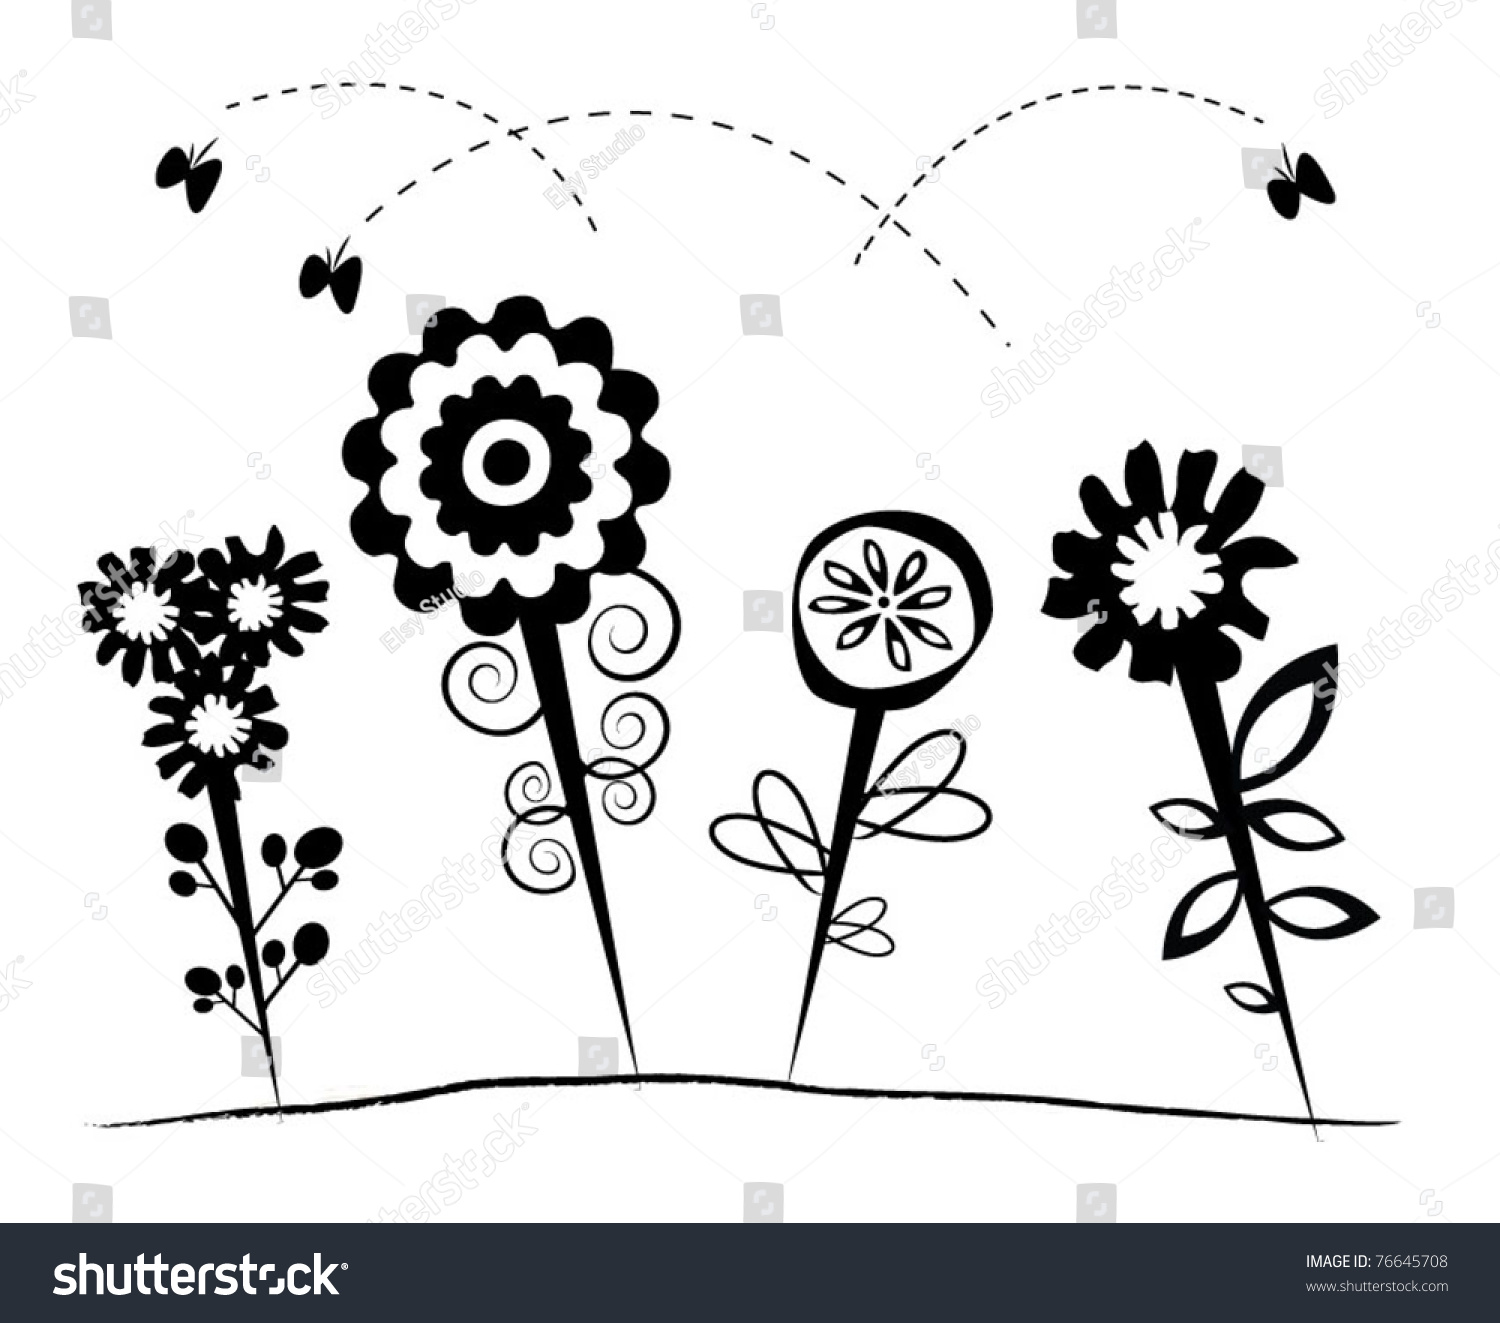 black and white abstract flower design